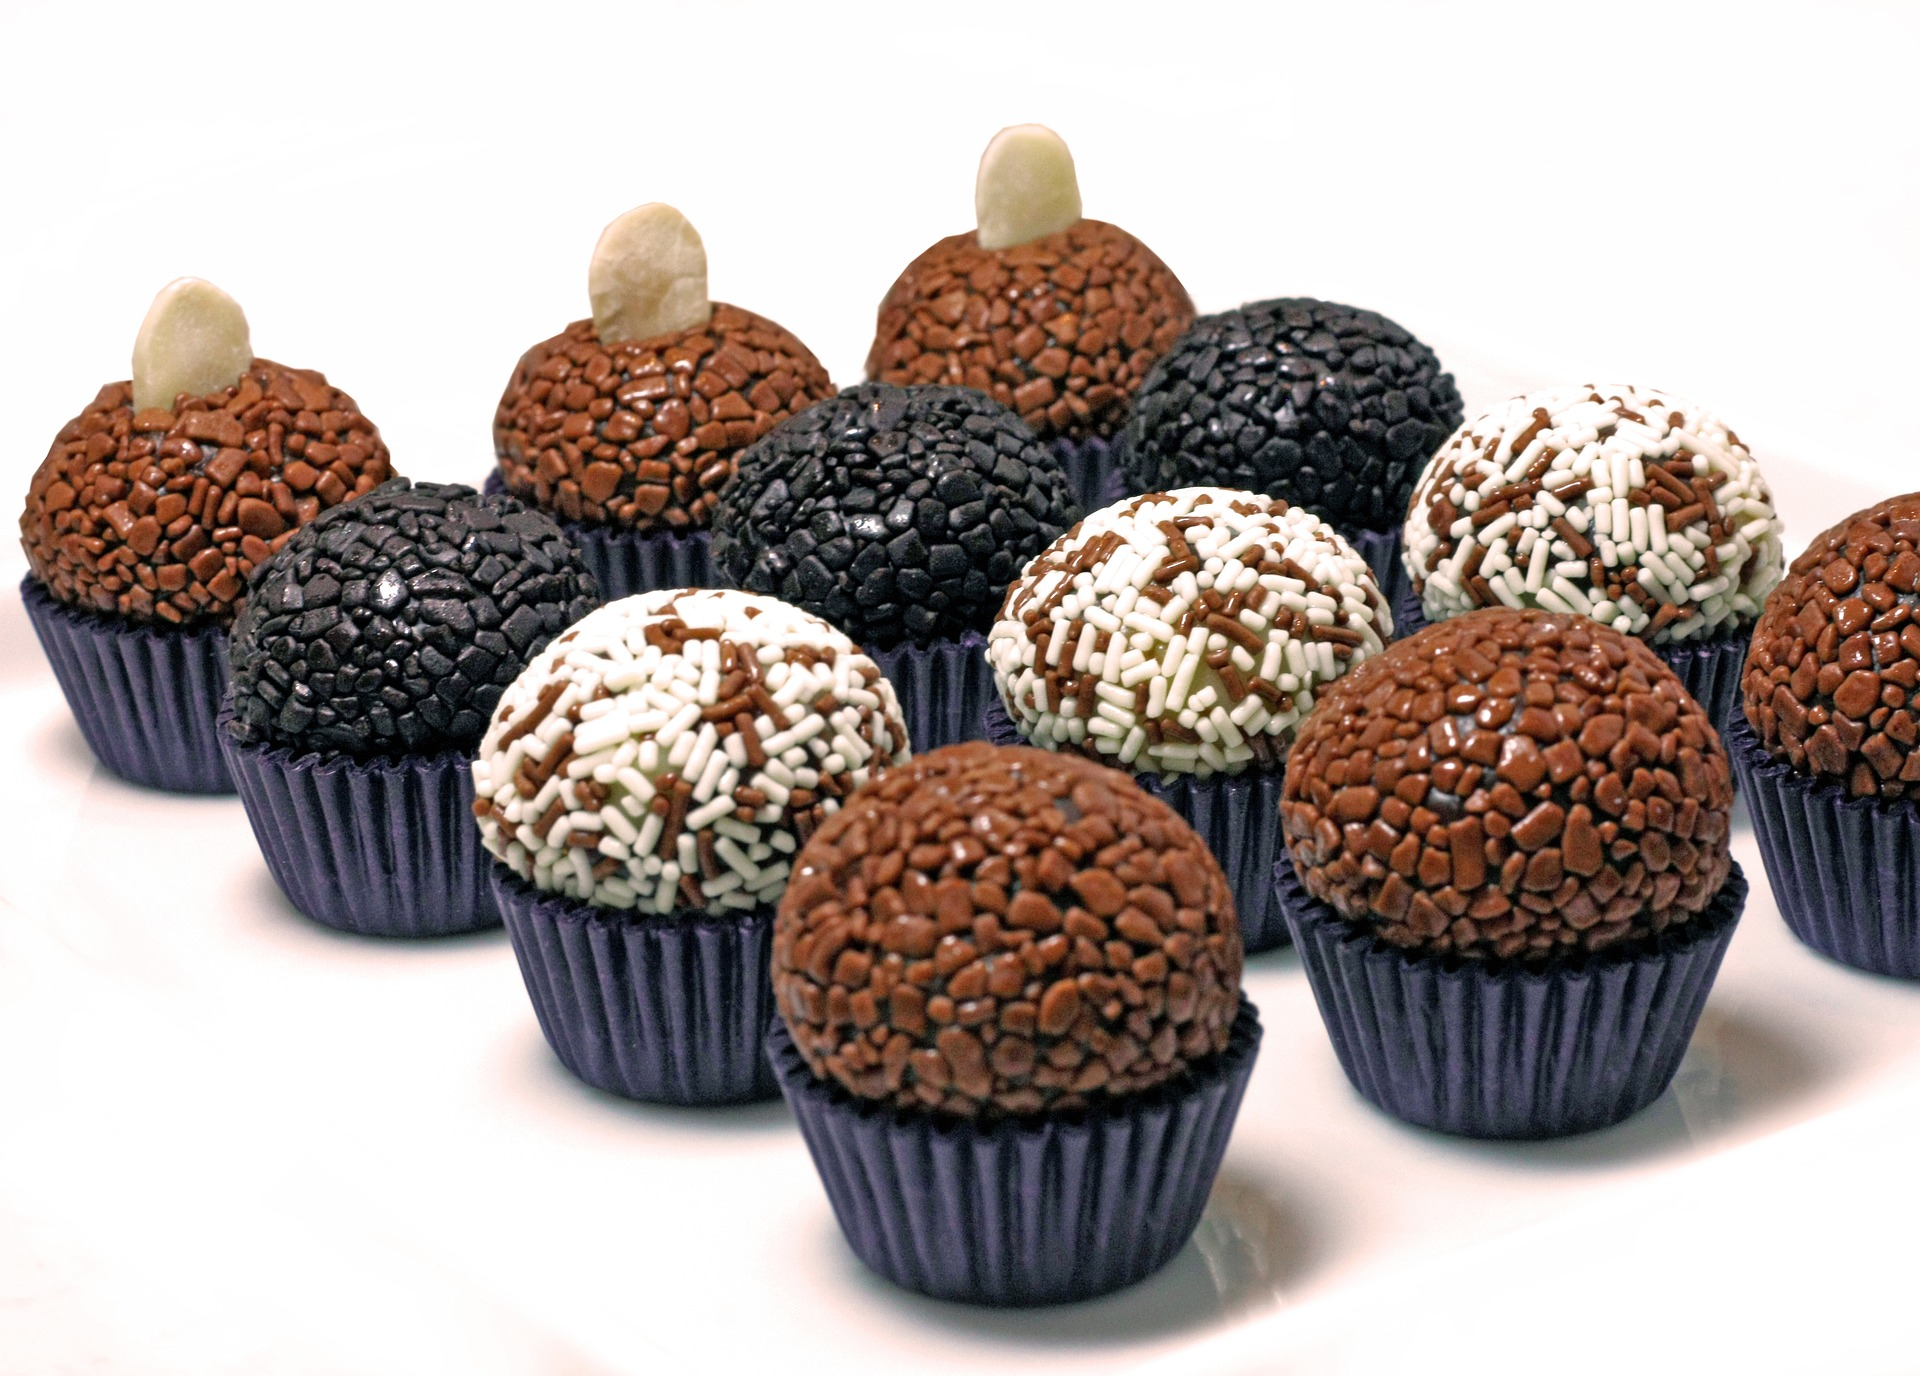 Country with The Top Most Instagrammable Food in the World: Brazil - Brigadeiro (Photo Credit Pixabay: lm2859)